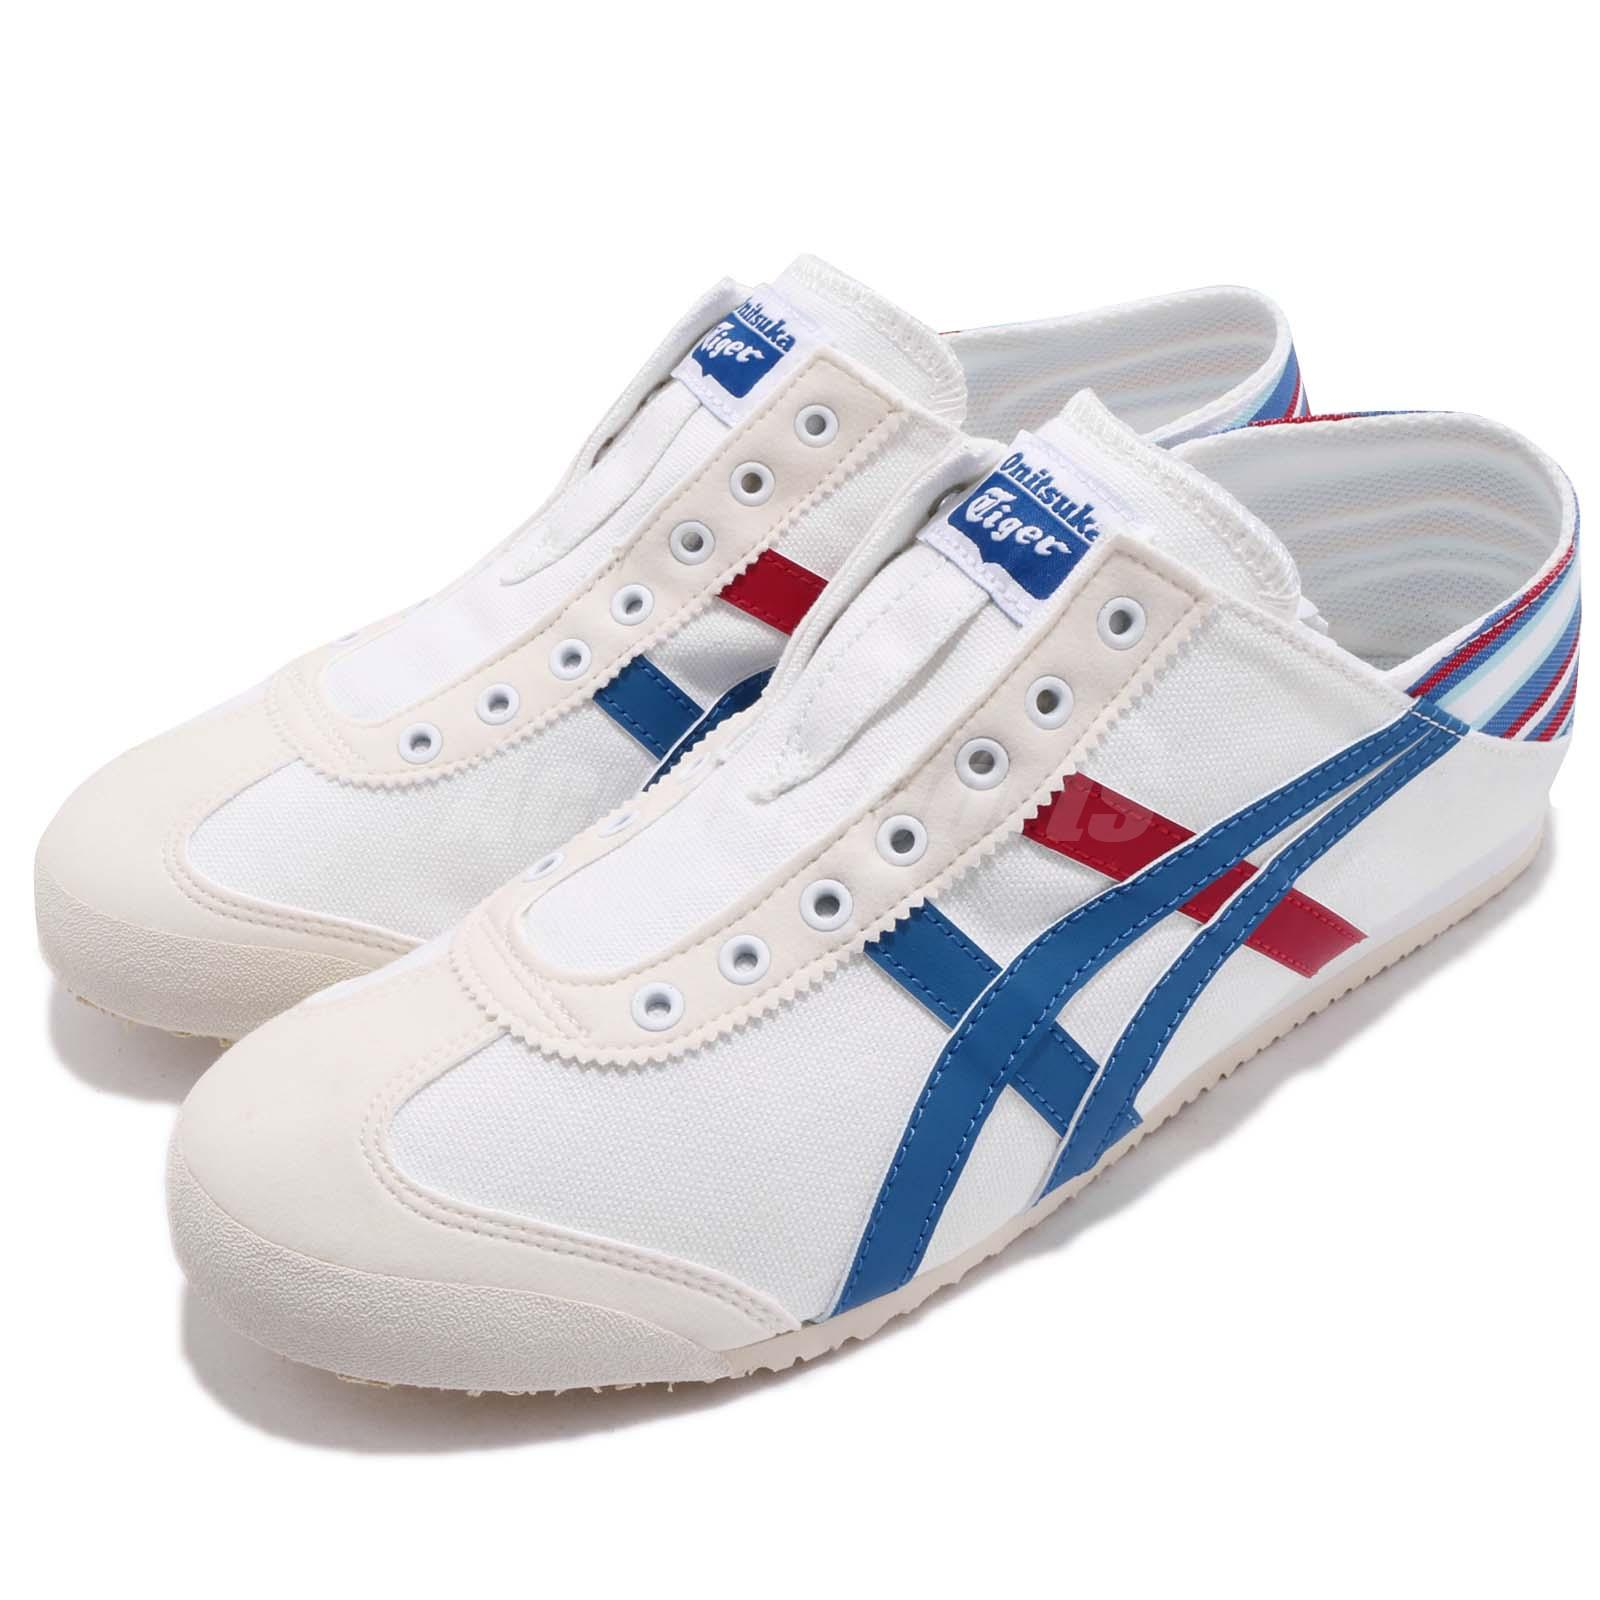 wholesale dealer fbf9c 46fb3 Details about Asics Onitsuka Tiger Mexico 66 PARATY White Blue Men Slip On  Casual TH6P4N-0142